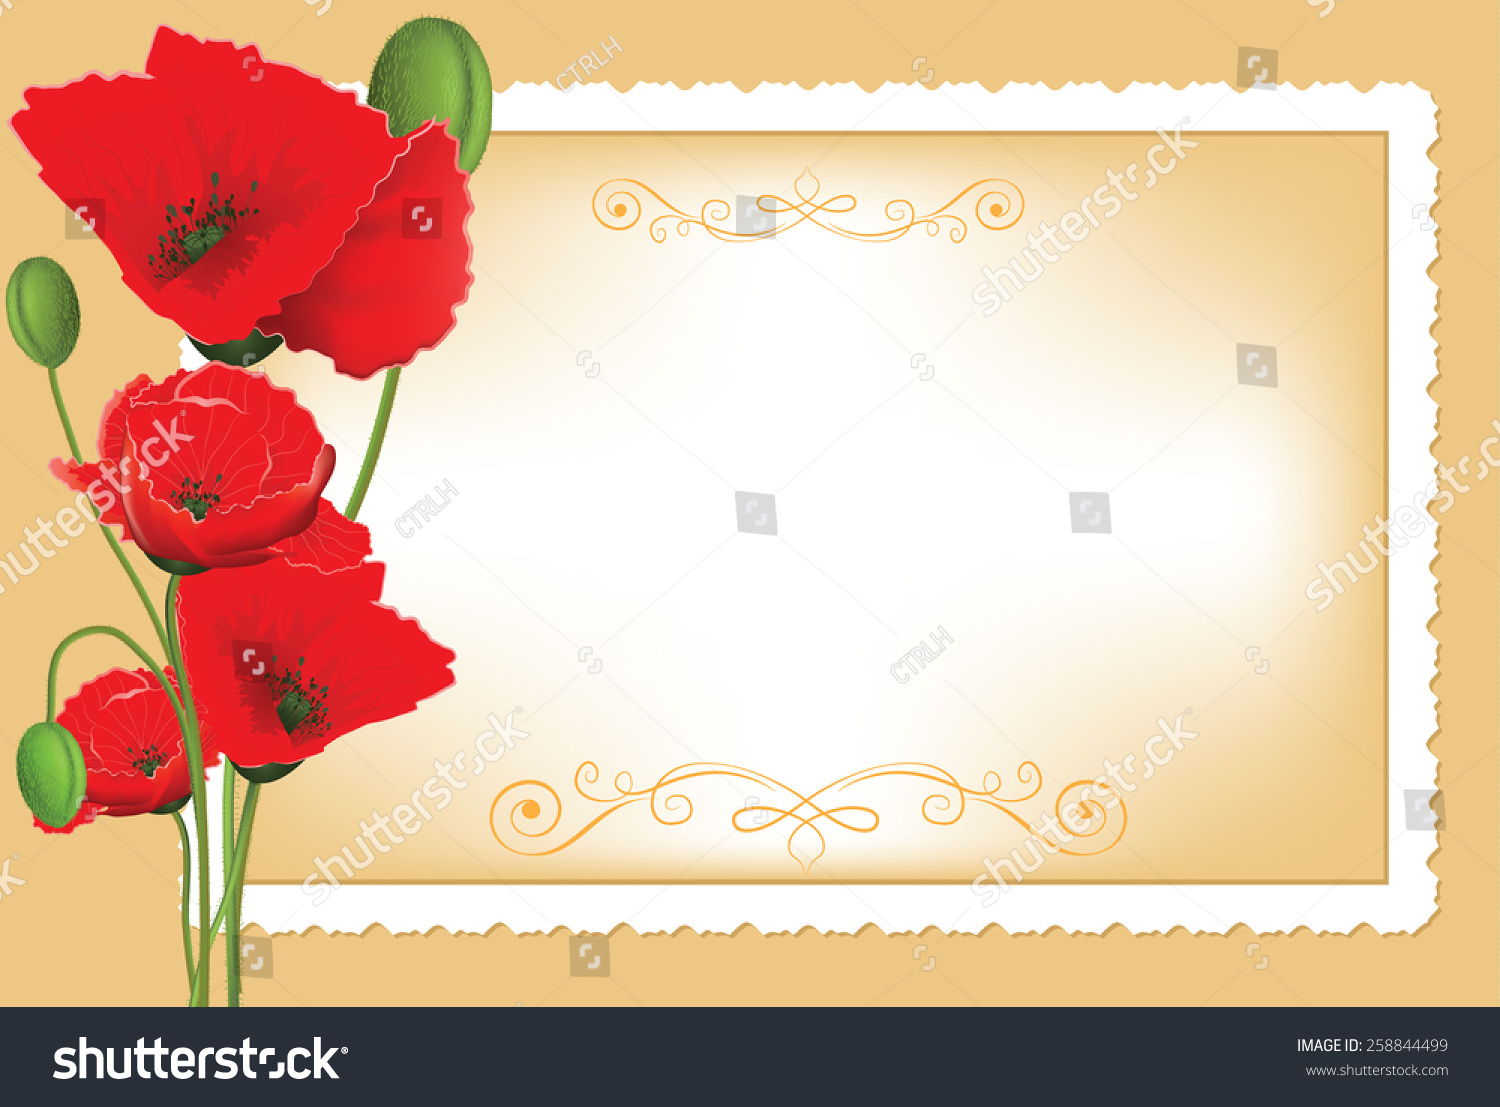 Realistic Red Poppies Flowers With A Greeting Card On The Background No Text So